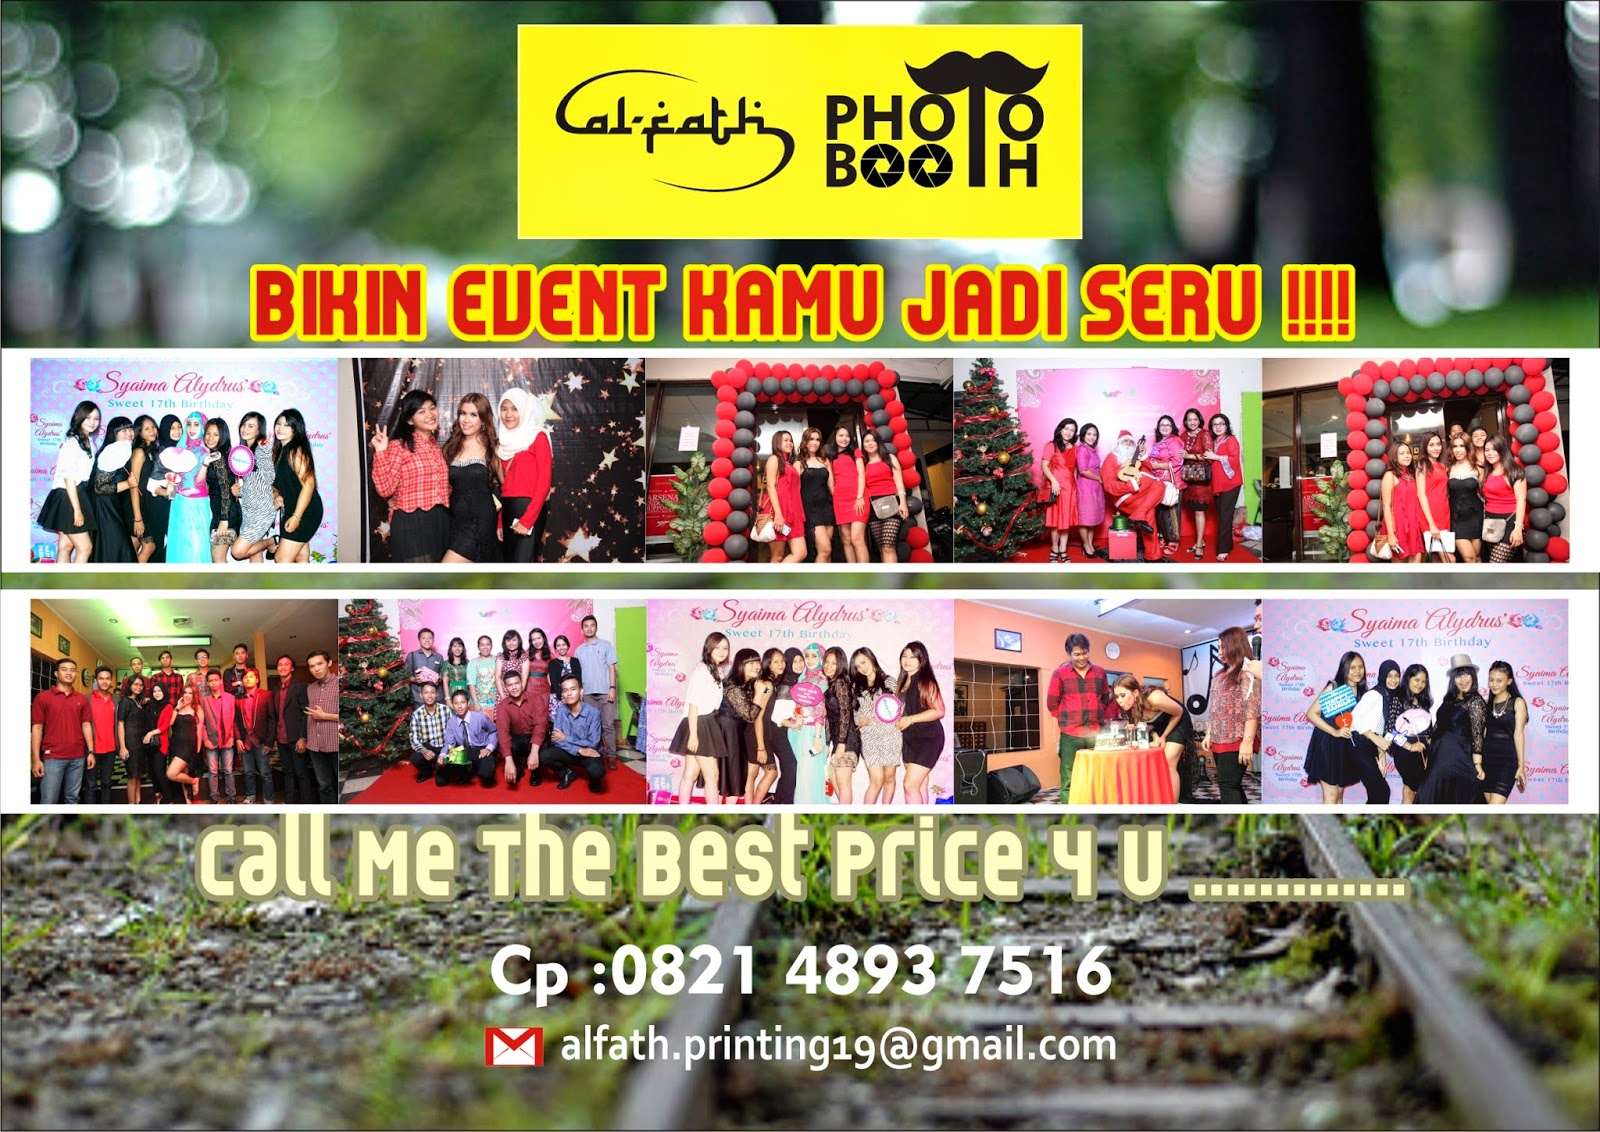 backdroop photo booth balikpapan